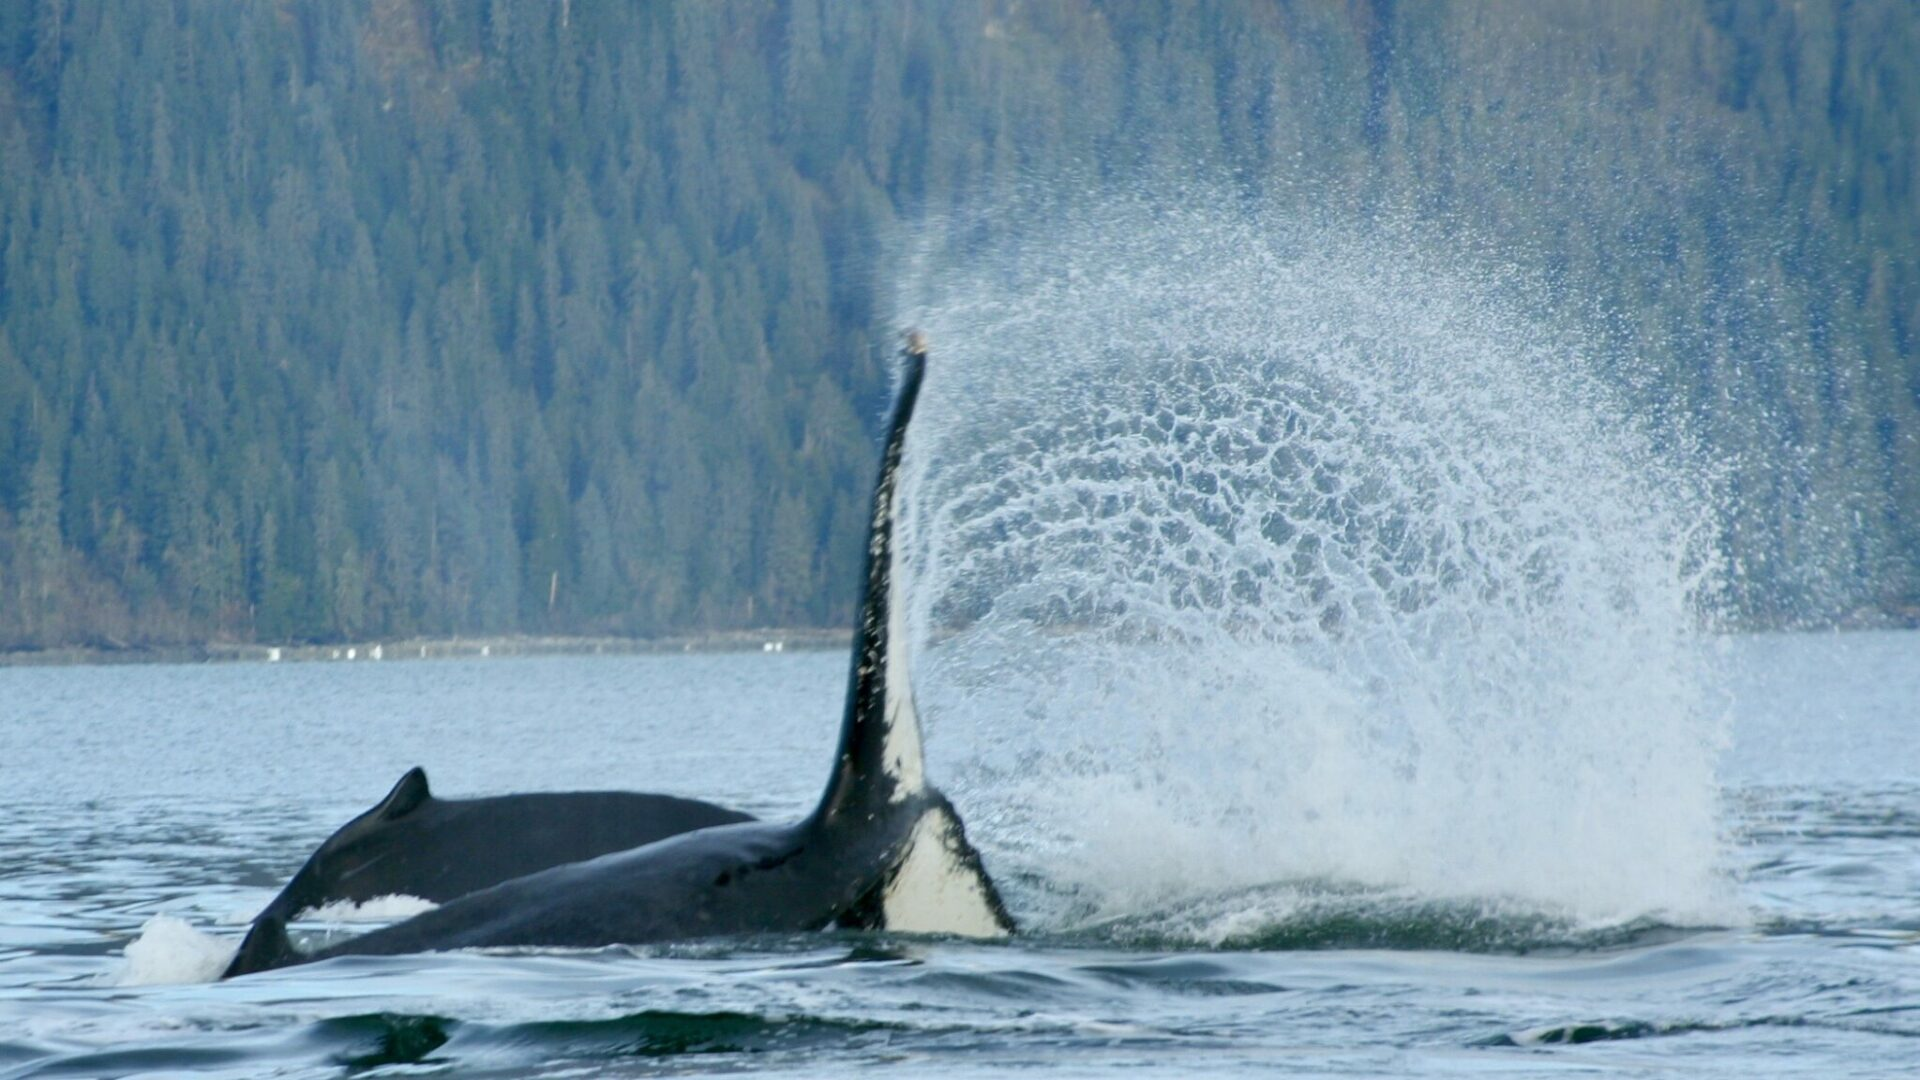 A whale tail breaching in the water with a forested hillside behind